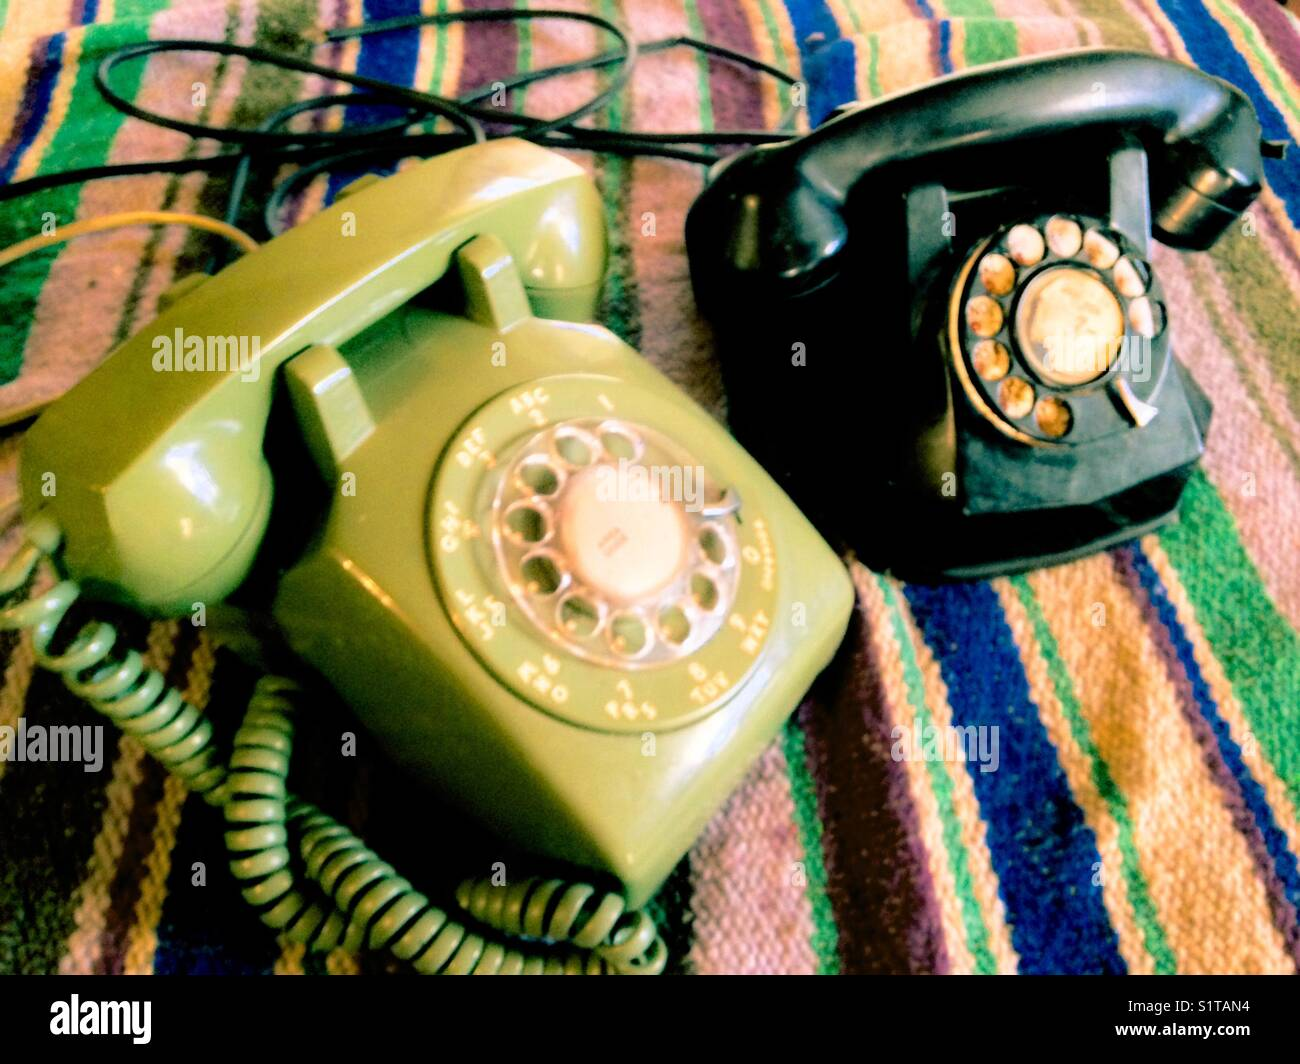 2 eras of vintage telephones - Stock Image